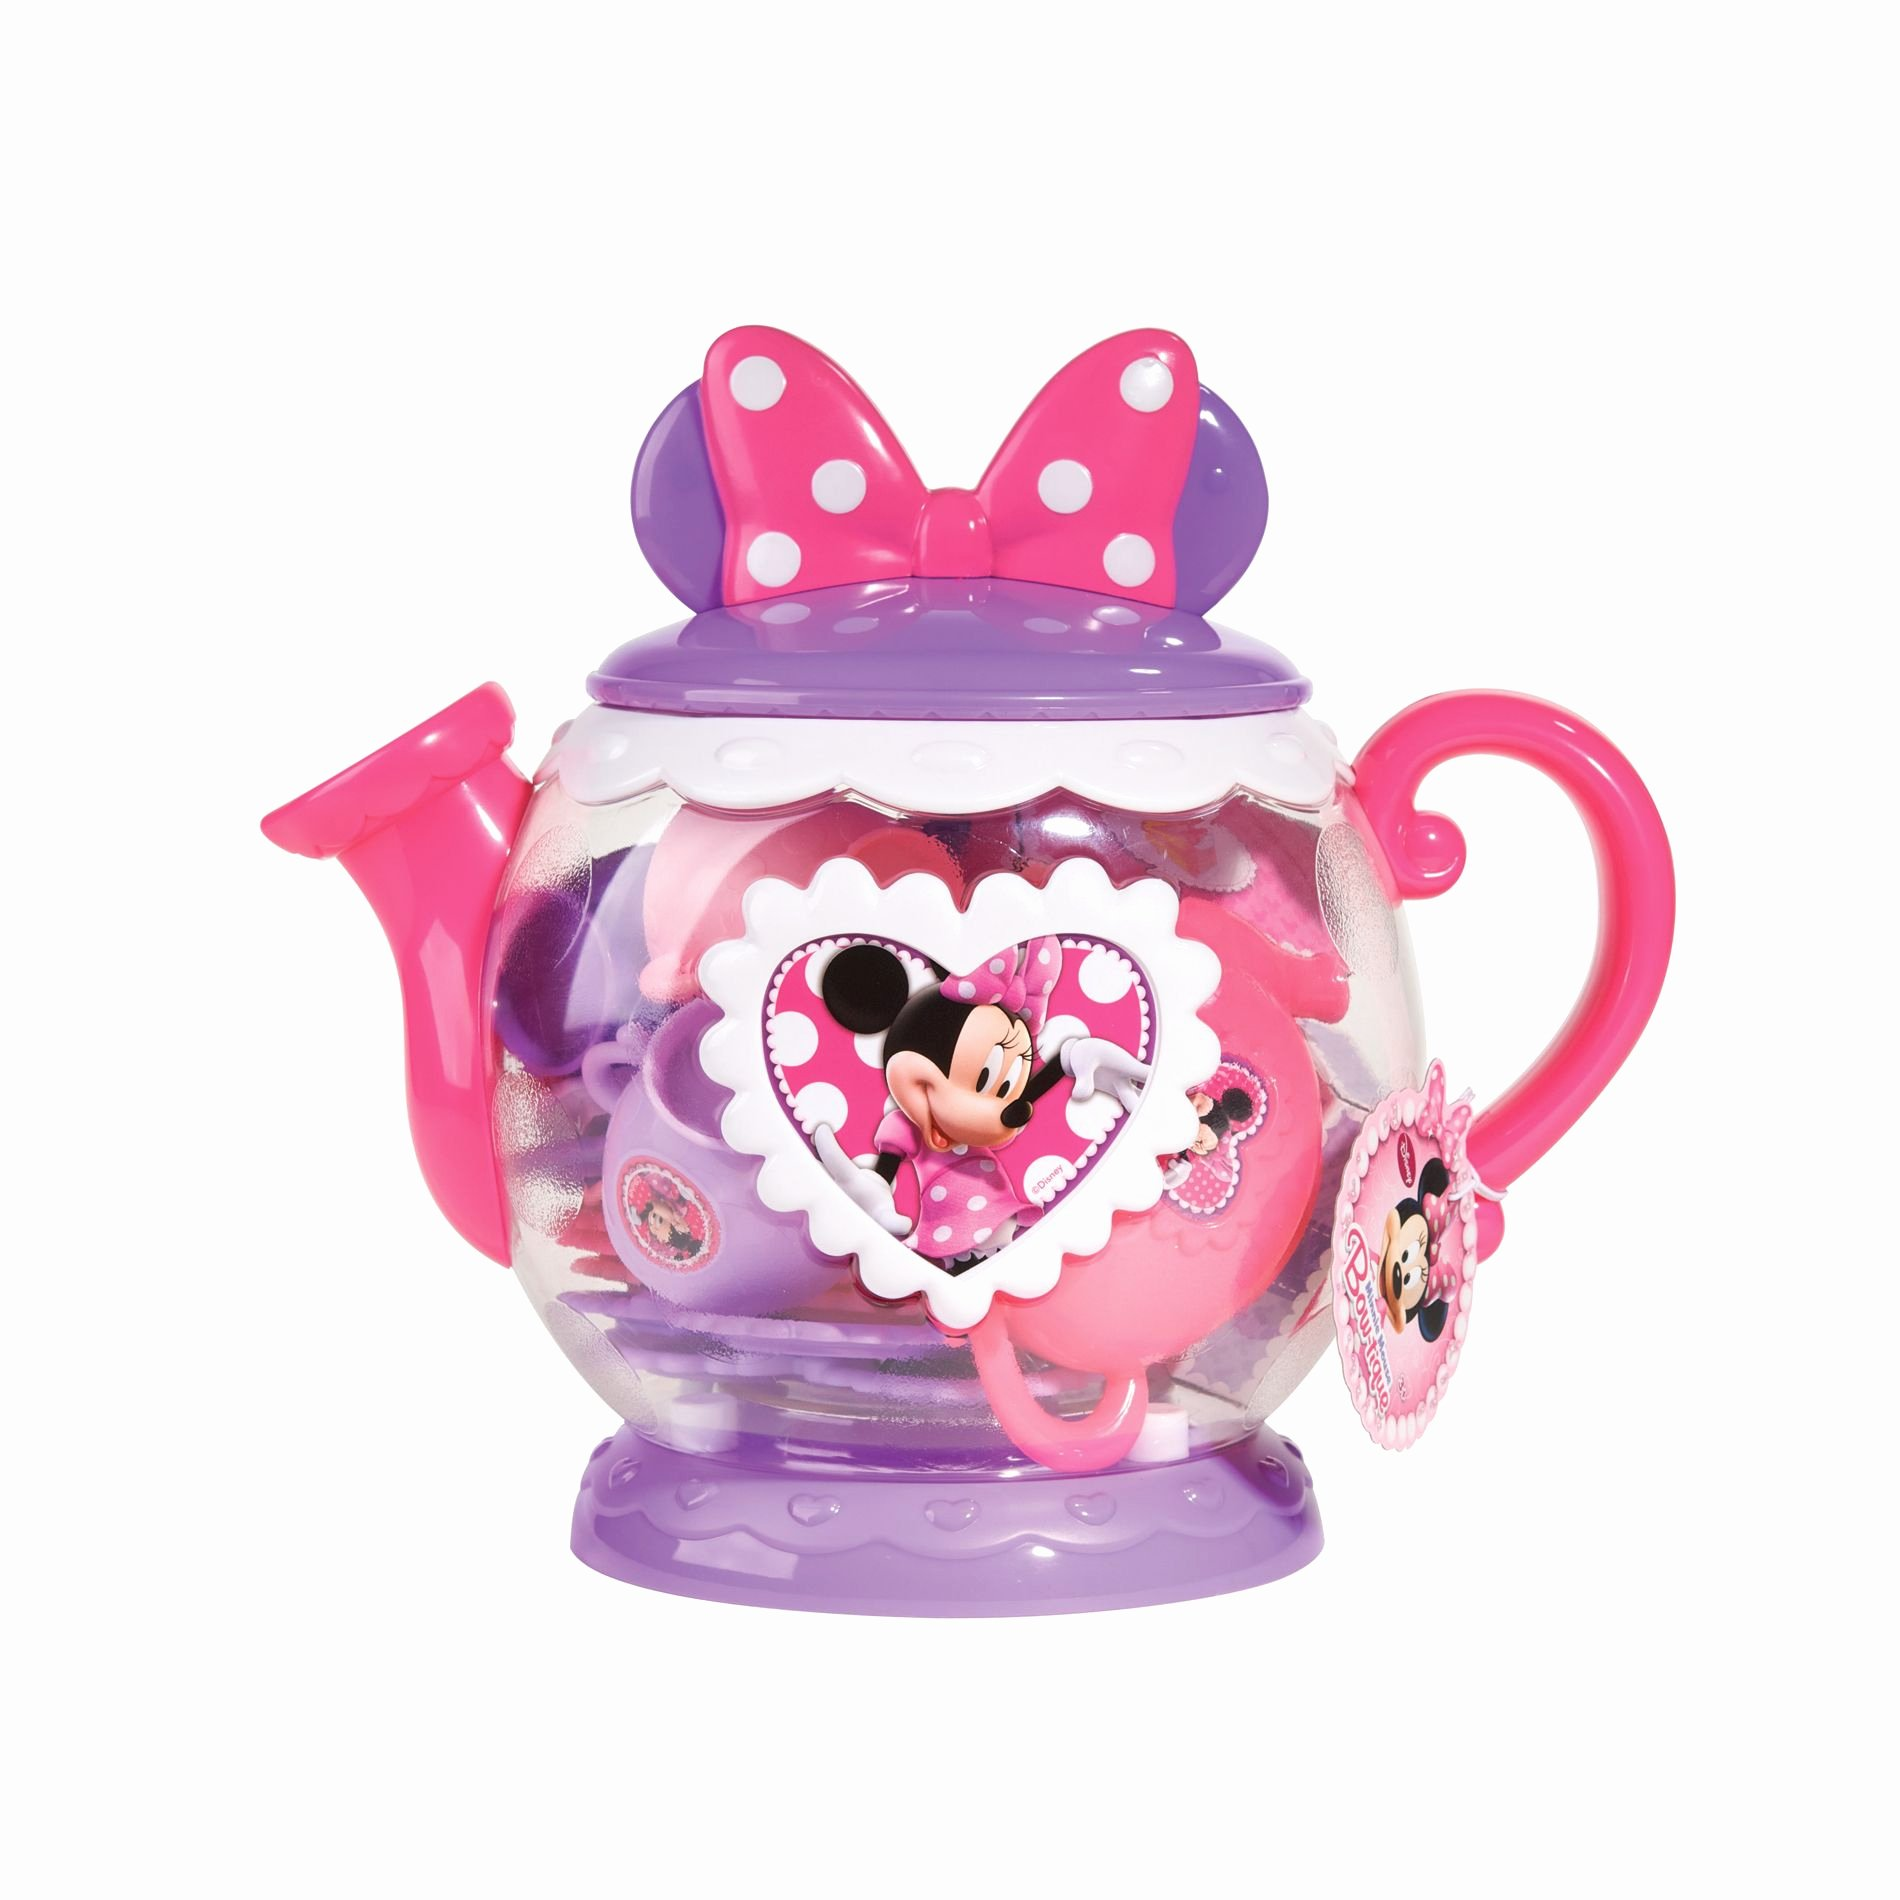 Big Minnie Mouse Bow Lovely Disney Teapot Play Set Minnie Mouse Bow Tique Lavender